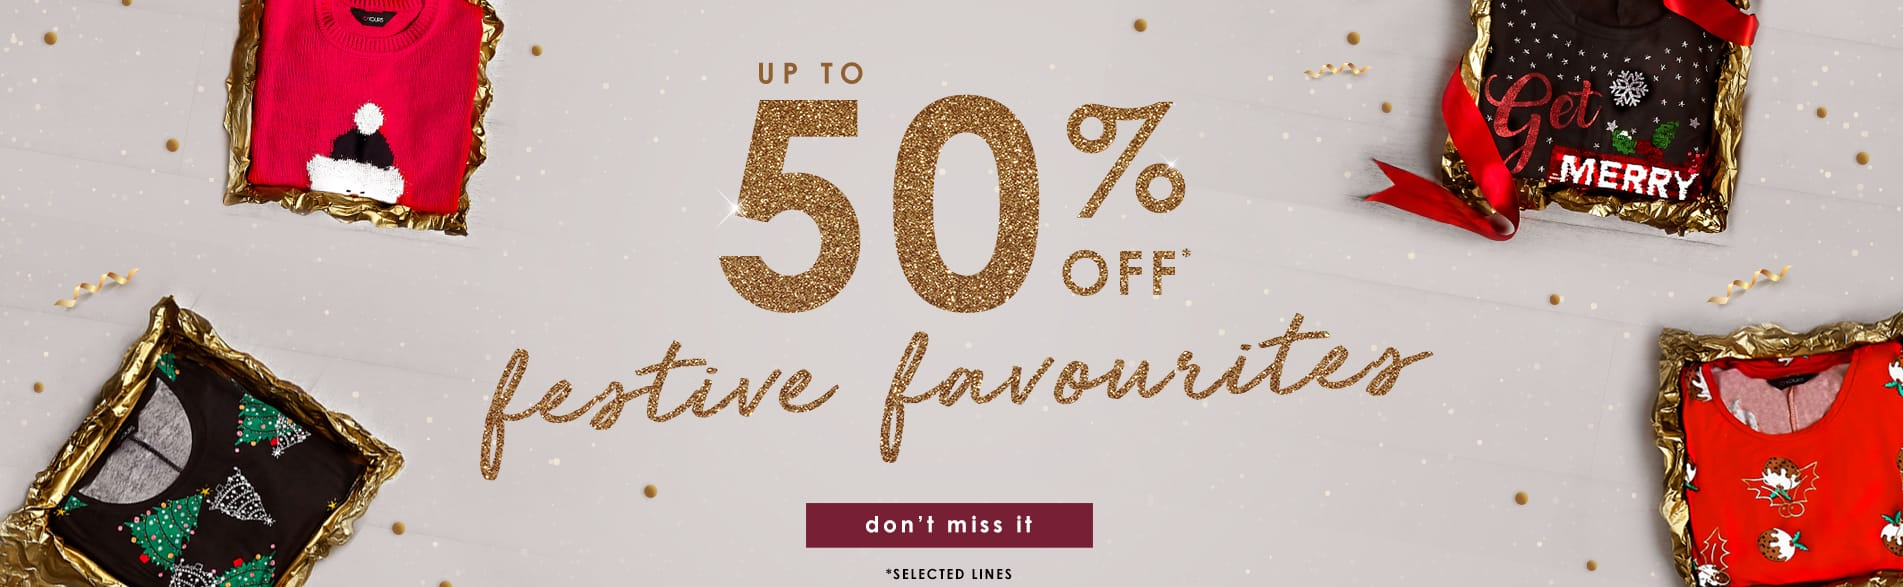 up to 50% off festive favourites